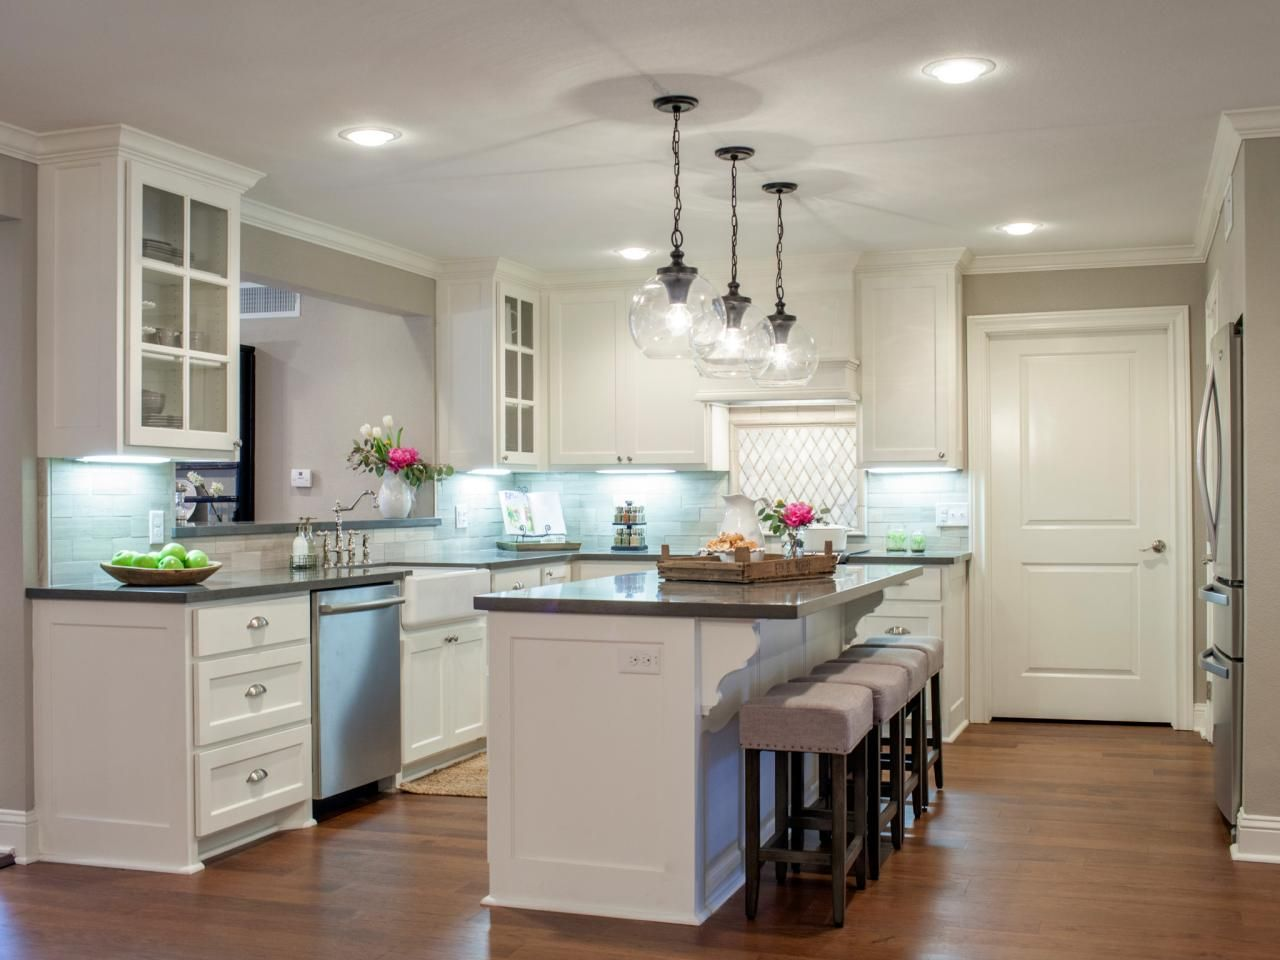 Fixer upper brass kitchen - As Seen On Hgtv S Fixer Upper